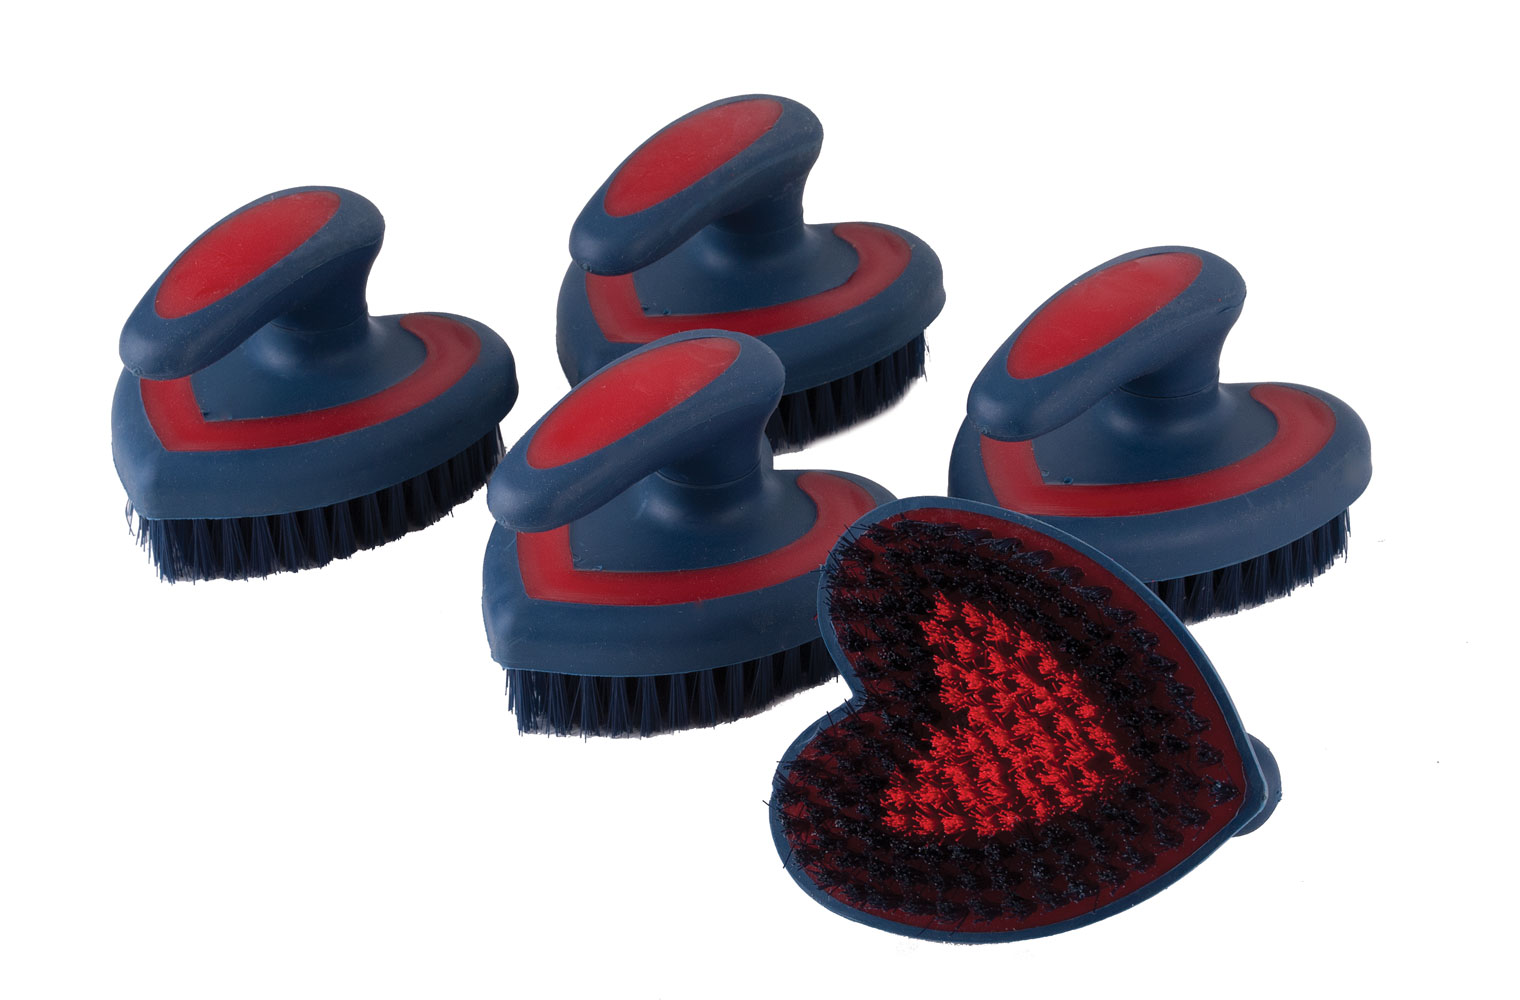 Rhinegold Soft Touch Body Brush Heart Shaped